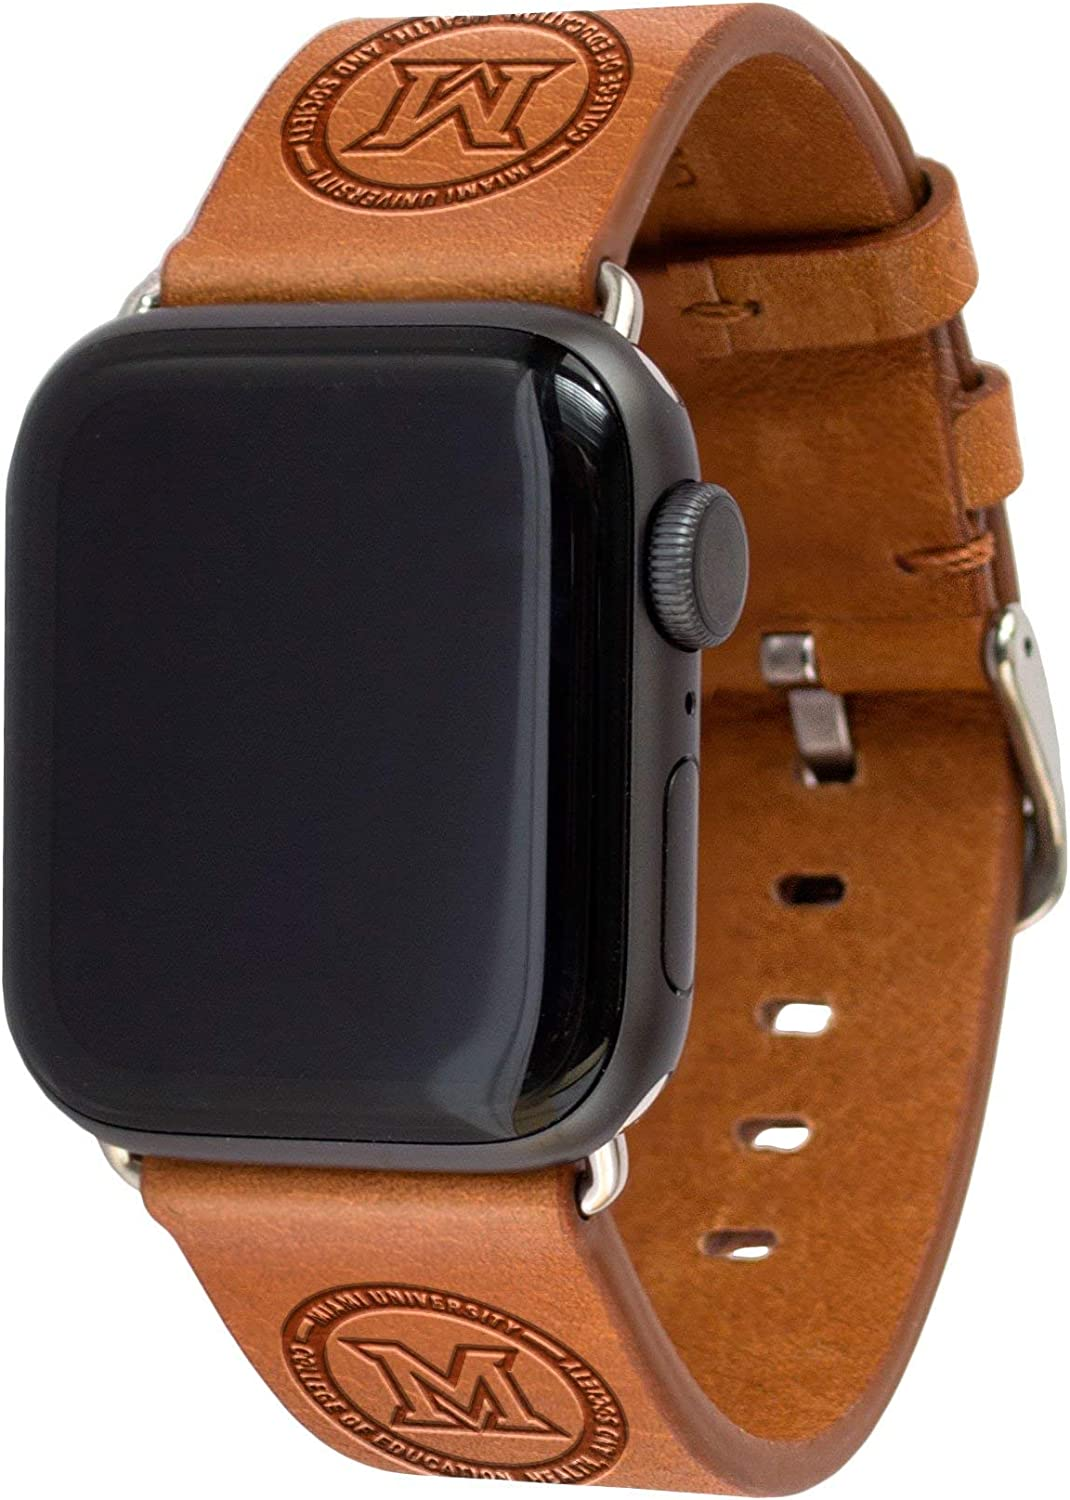 Miami University College of Education, Health, and Society Leather Watch Band Compatible with Apple Watch